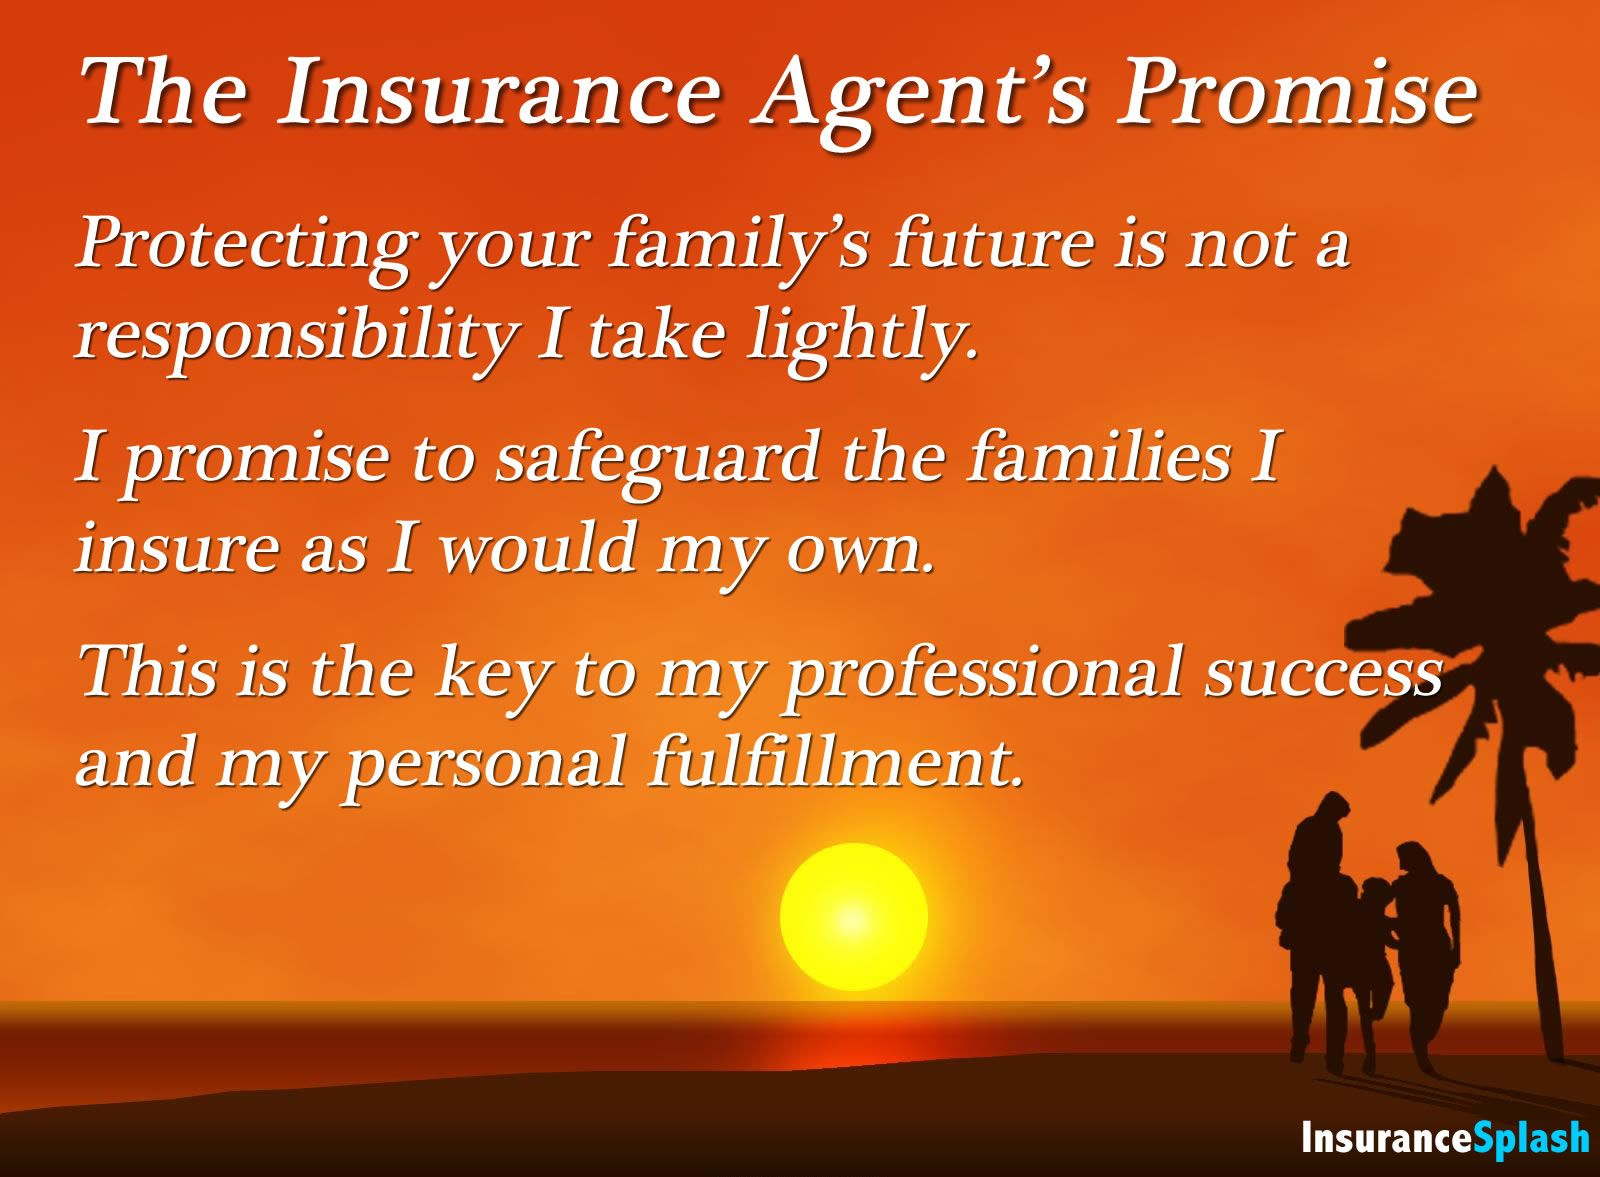 Insurance agents promise to protect clients families as